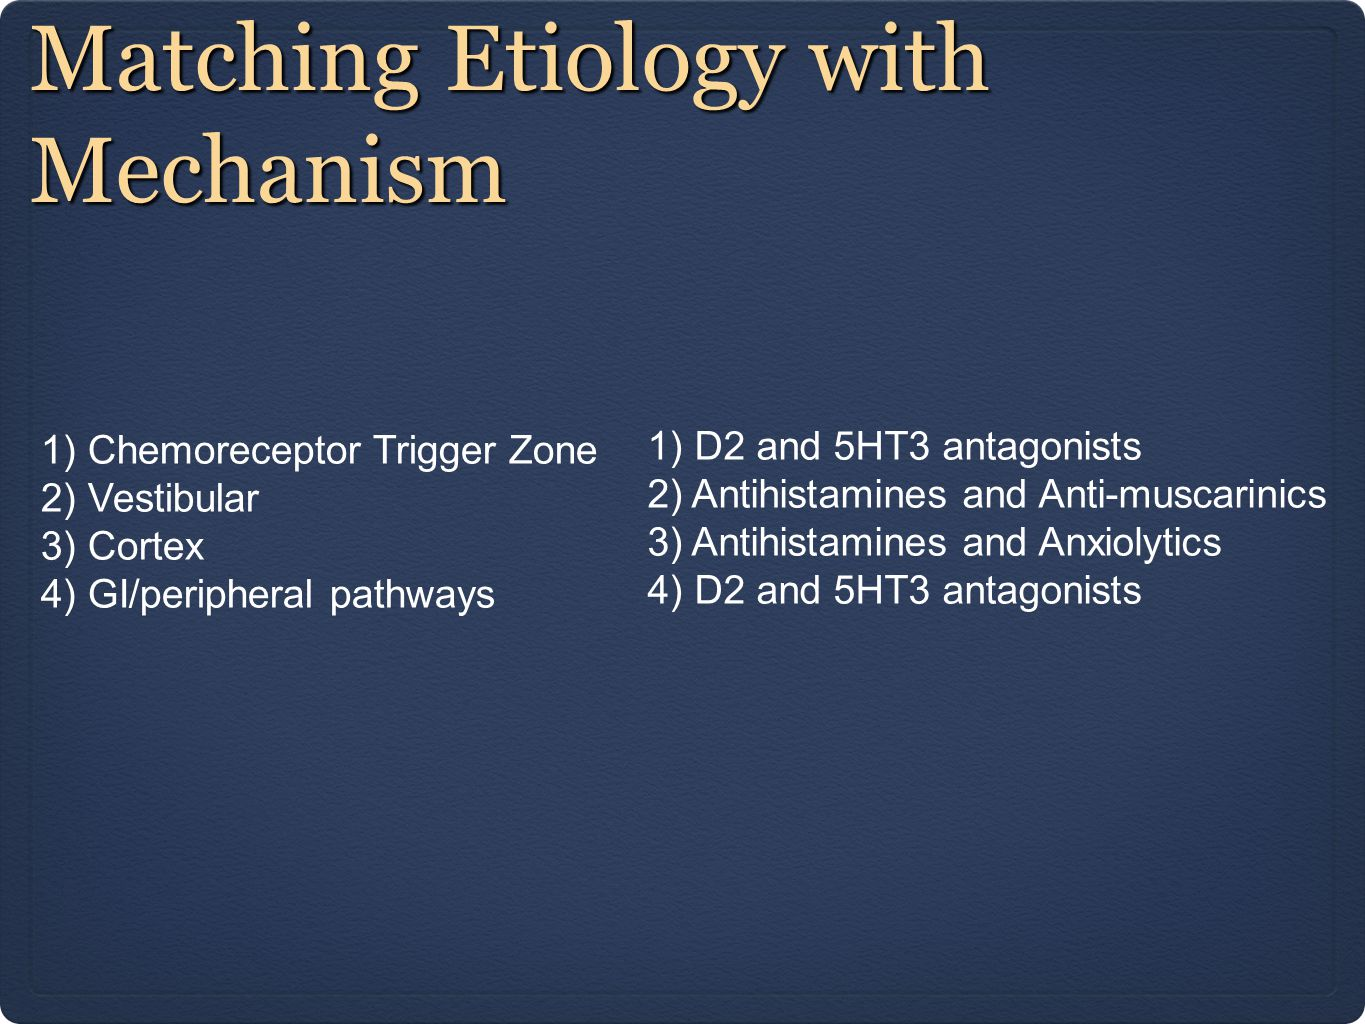 Matching Etiology with Mechanism